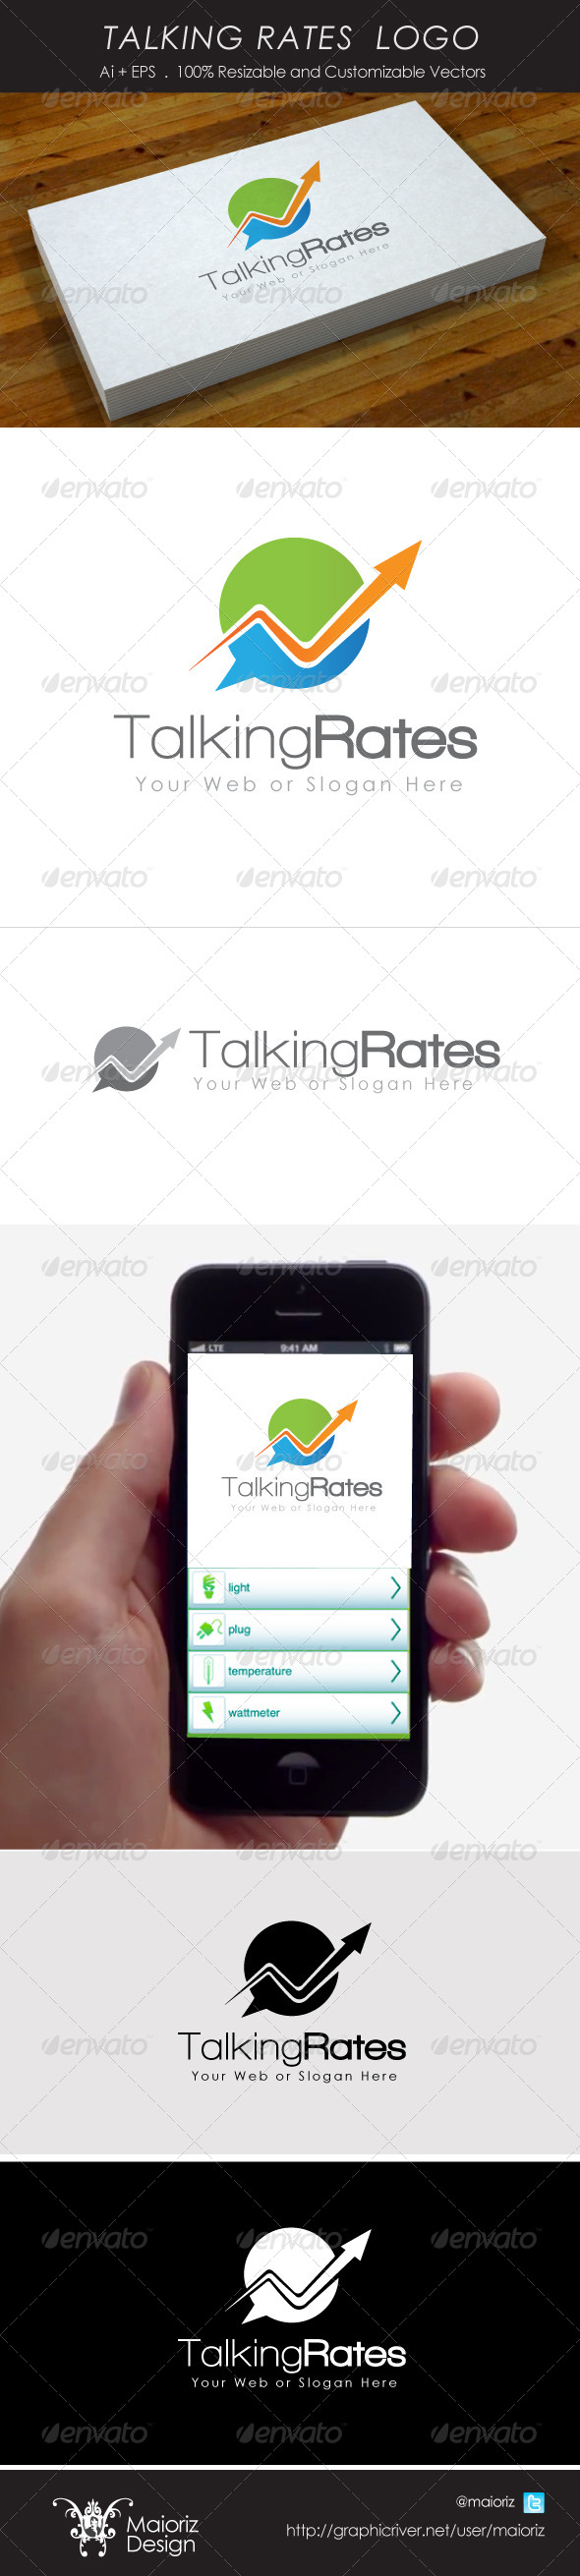 GraphicRiver Talking Rates Logo 4202747